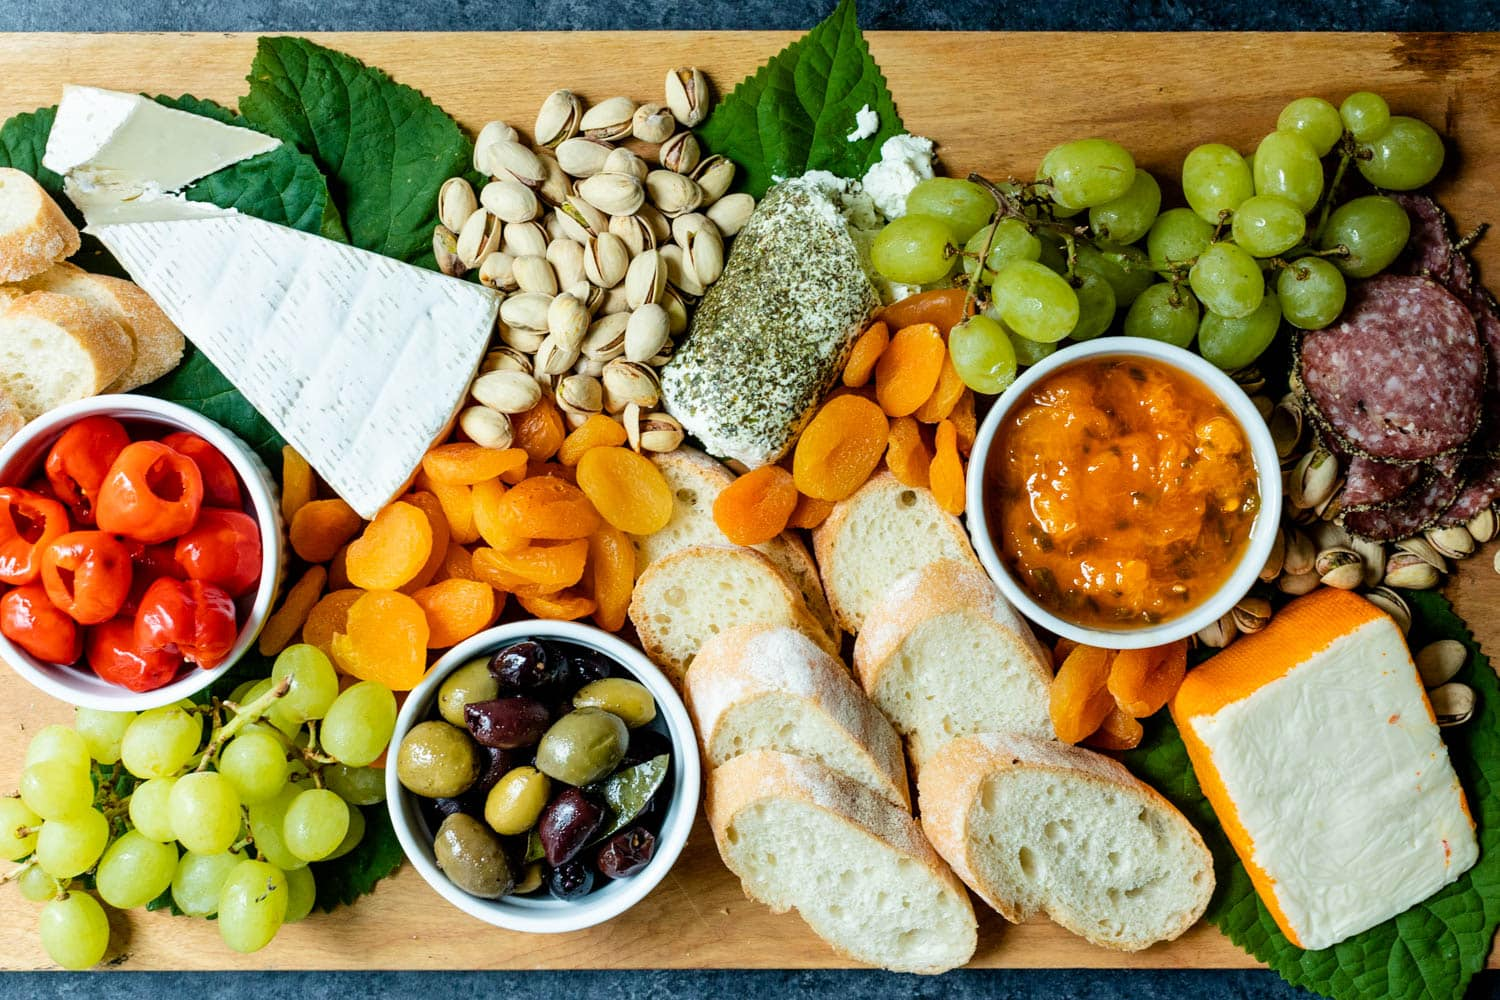 Top down view of peach jalapeno jam in a white bowl with a spoon surrounded by tomatoes, grapes, goat cheese, pistachios, olives, bread, dried apricots and meat all on a brown serving board with green leaves in the background